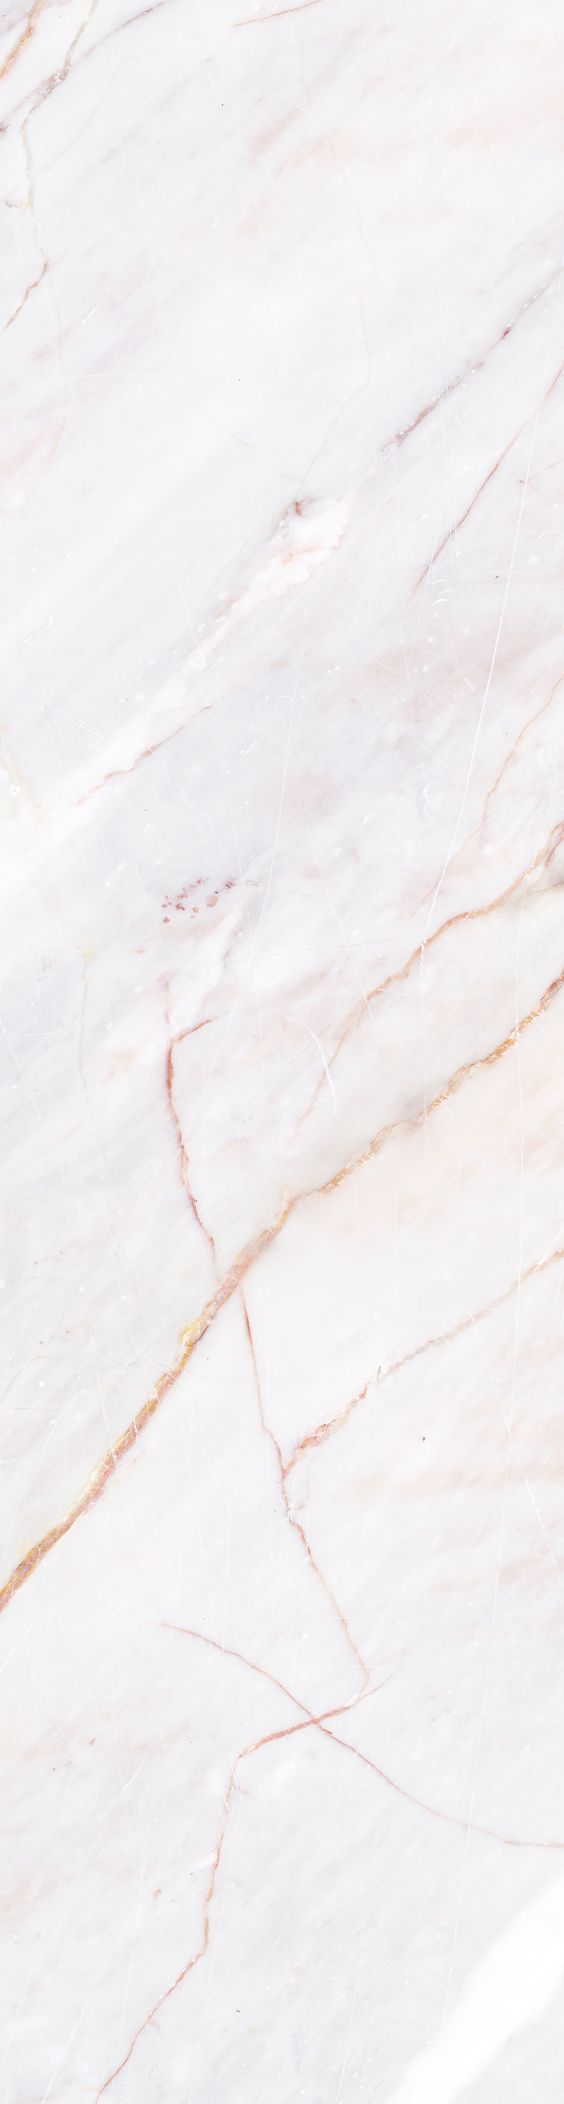 Go beyond plain white walls with this wonderfully minimalistic marble wallpaper design. Mix with soft textiles and glossy metallics to create a luxury modern space.